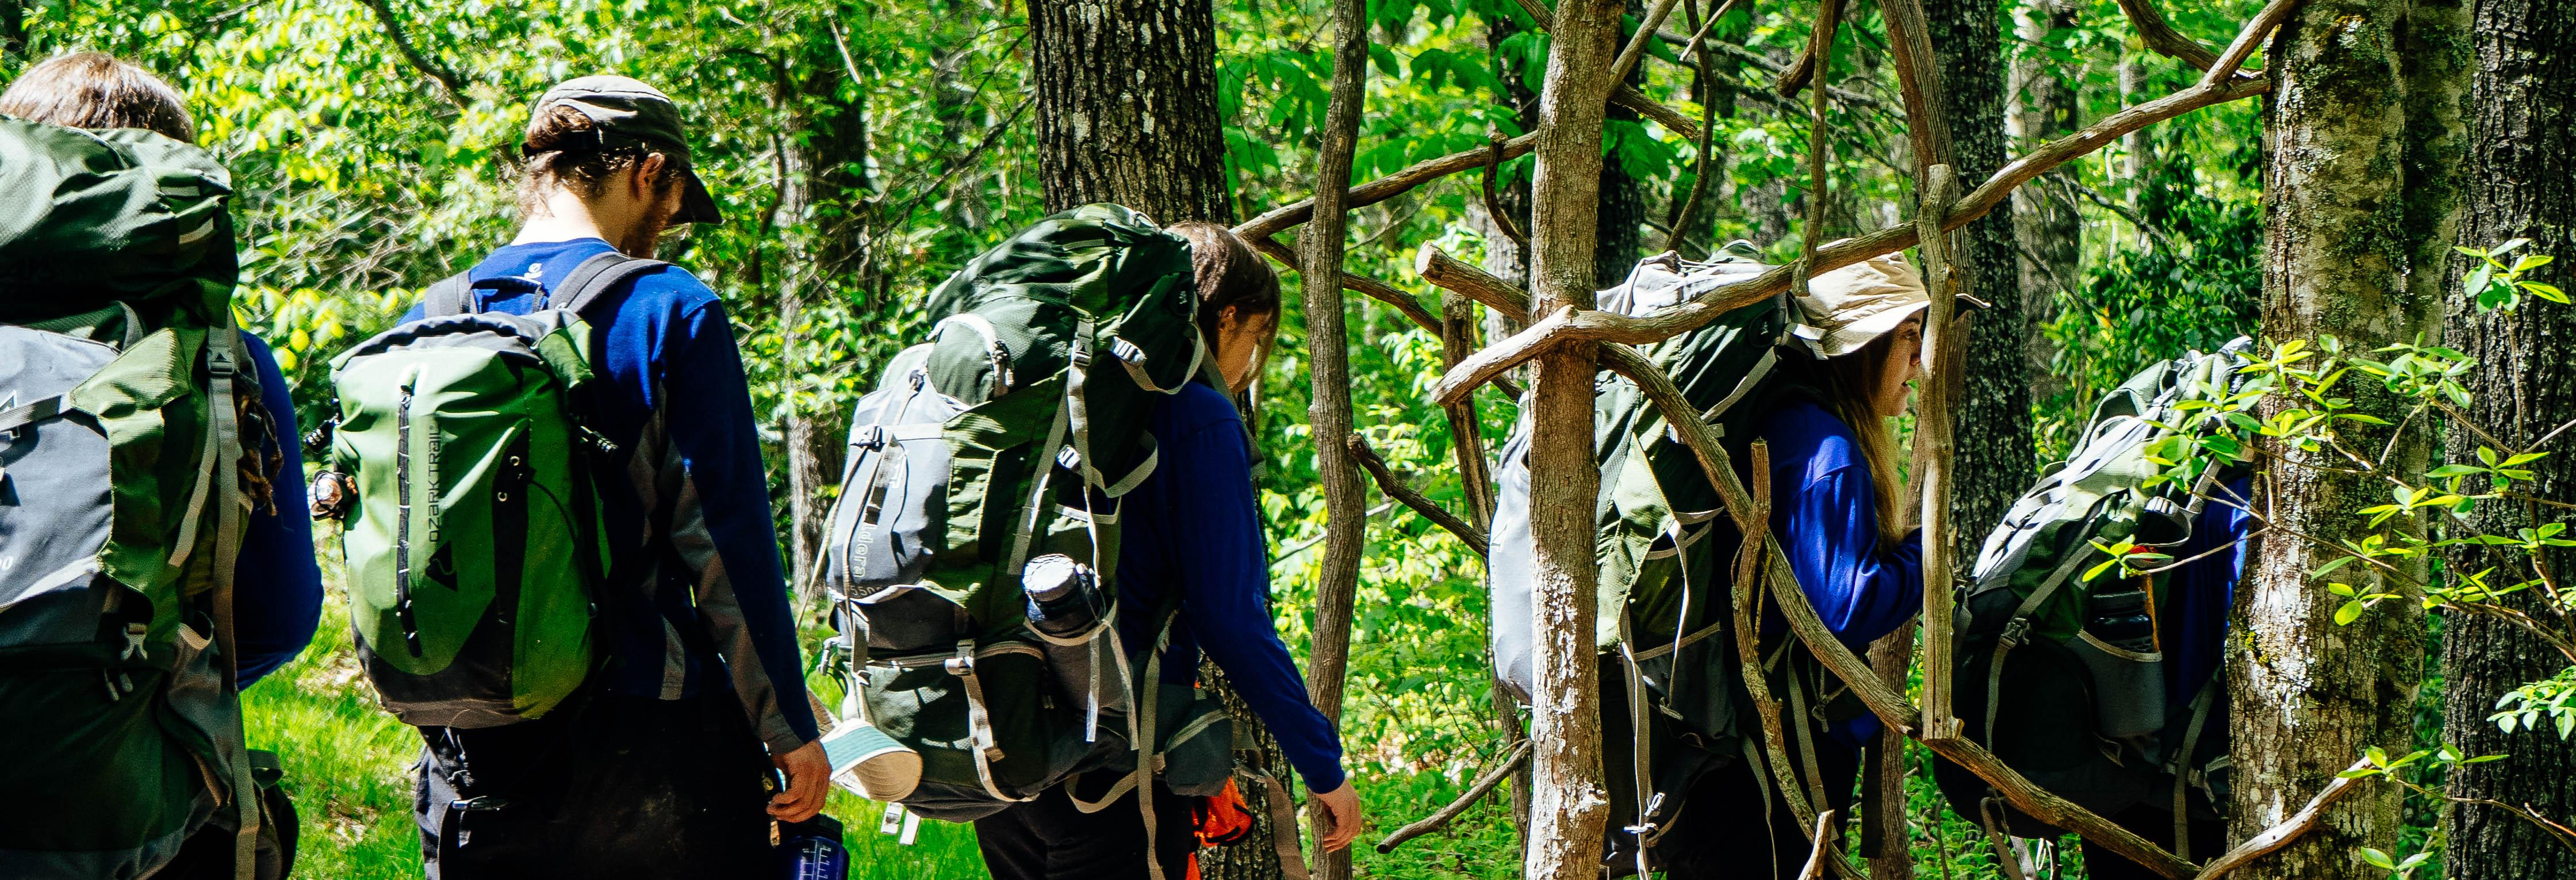 Survival Gear: The 10 Essential Items You Need To Stay Alive Outdoors